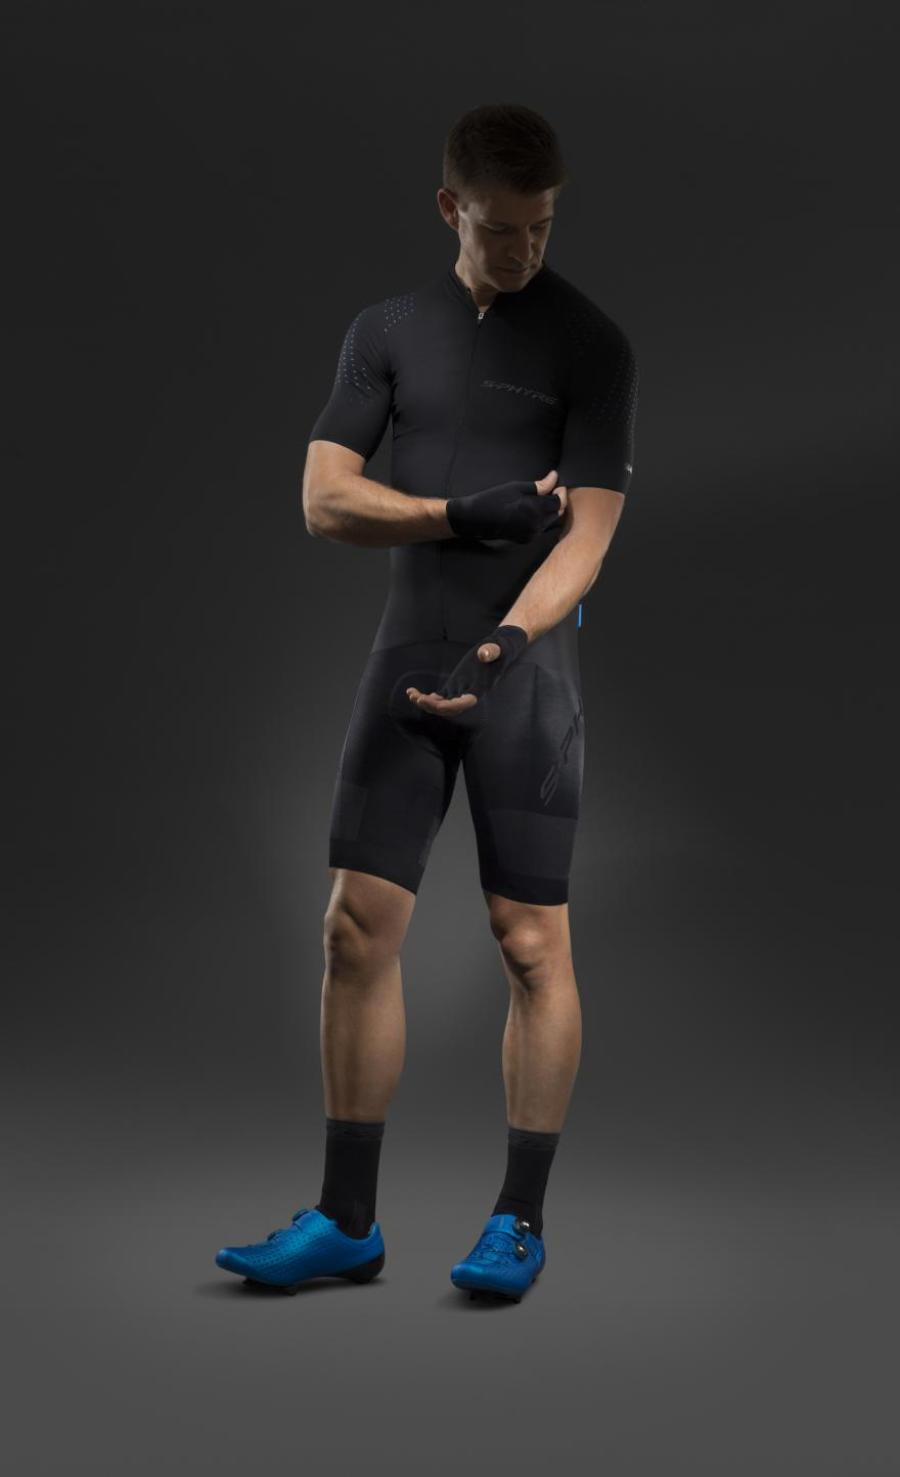 shimano-s-phyre-clothing-1